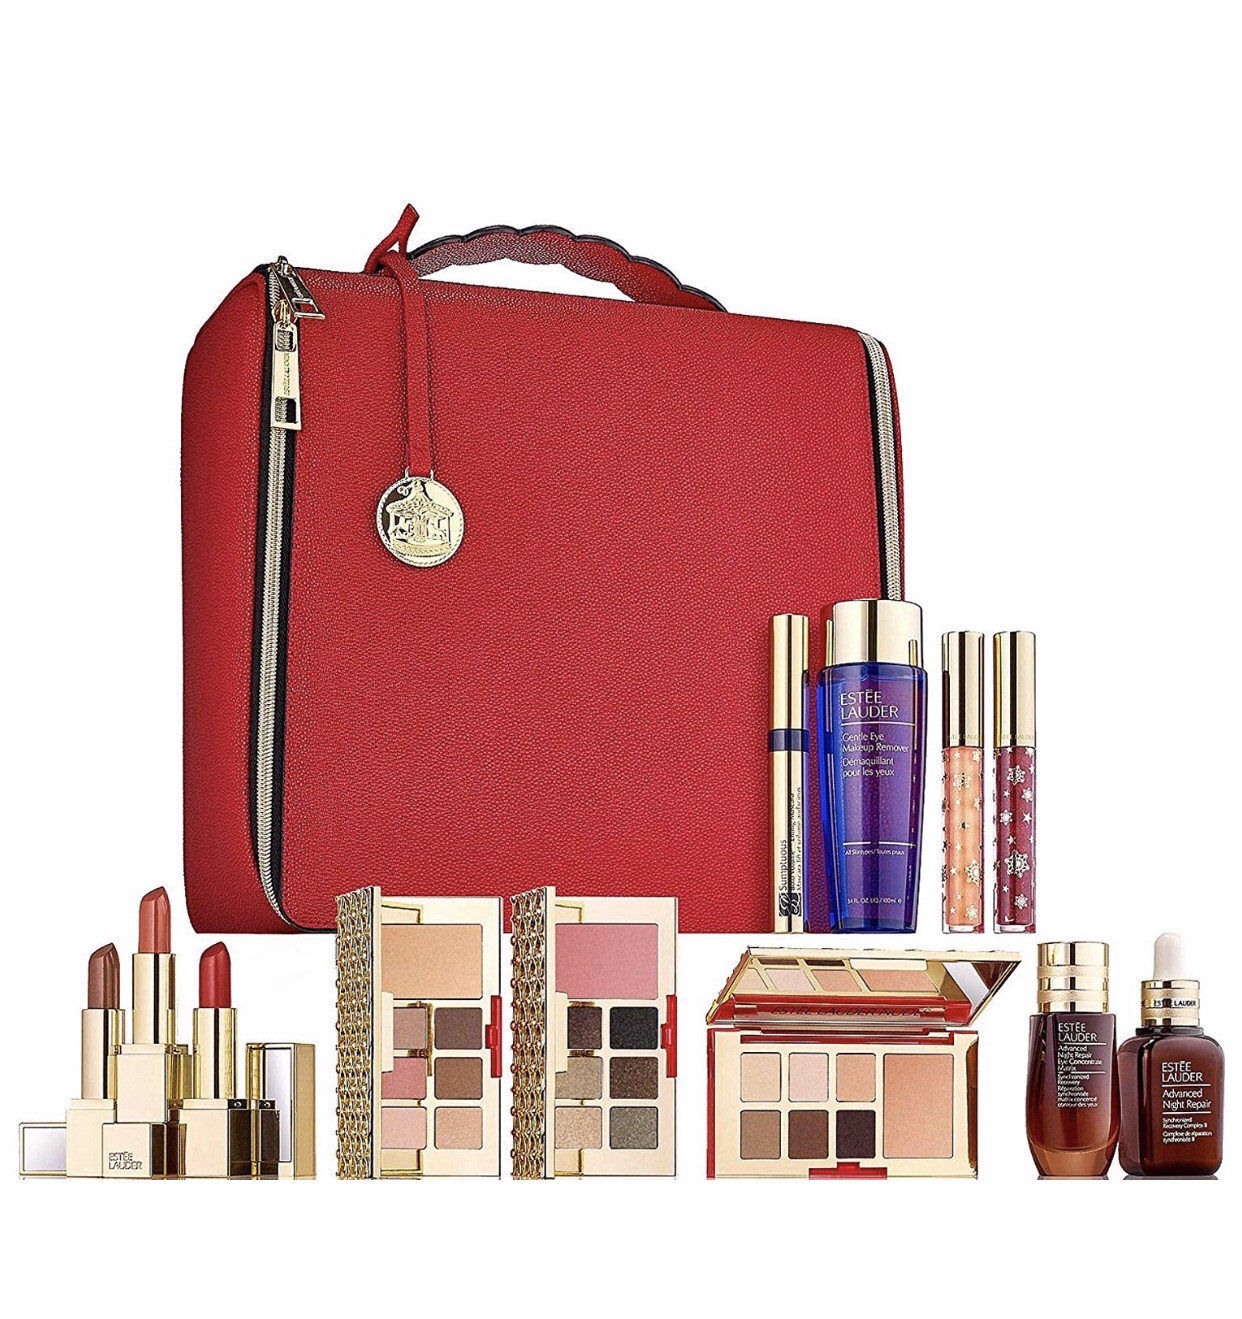 31 Beauty Essentials for the Price of One Estee Lauder